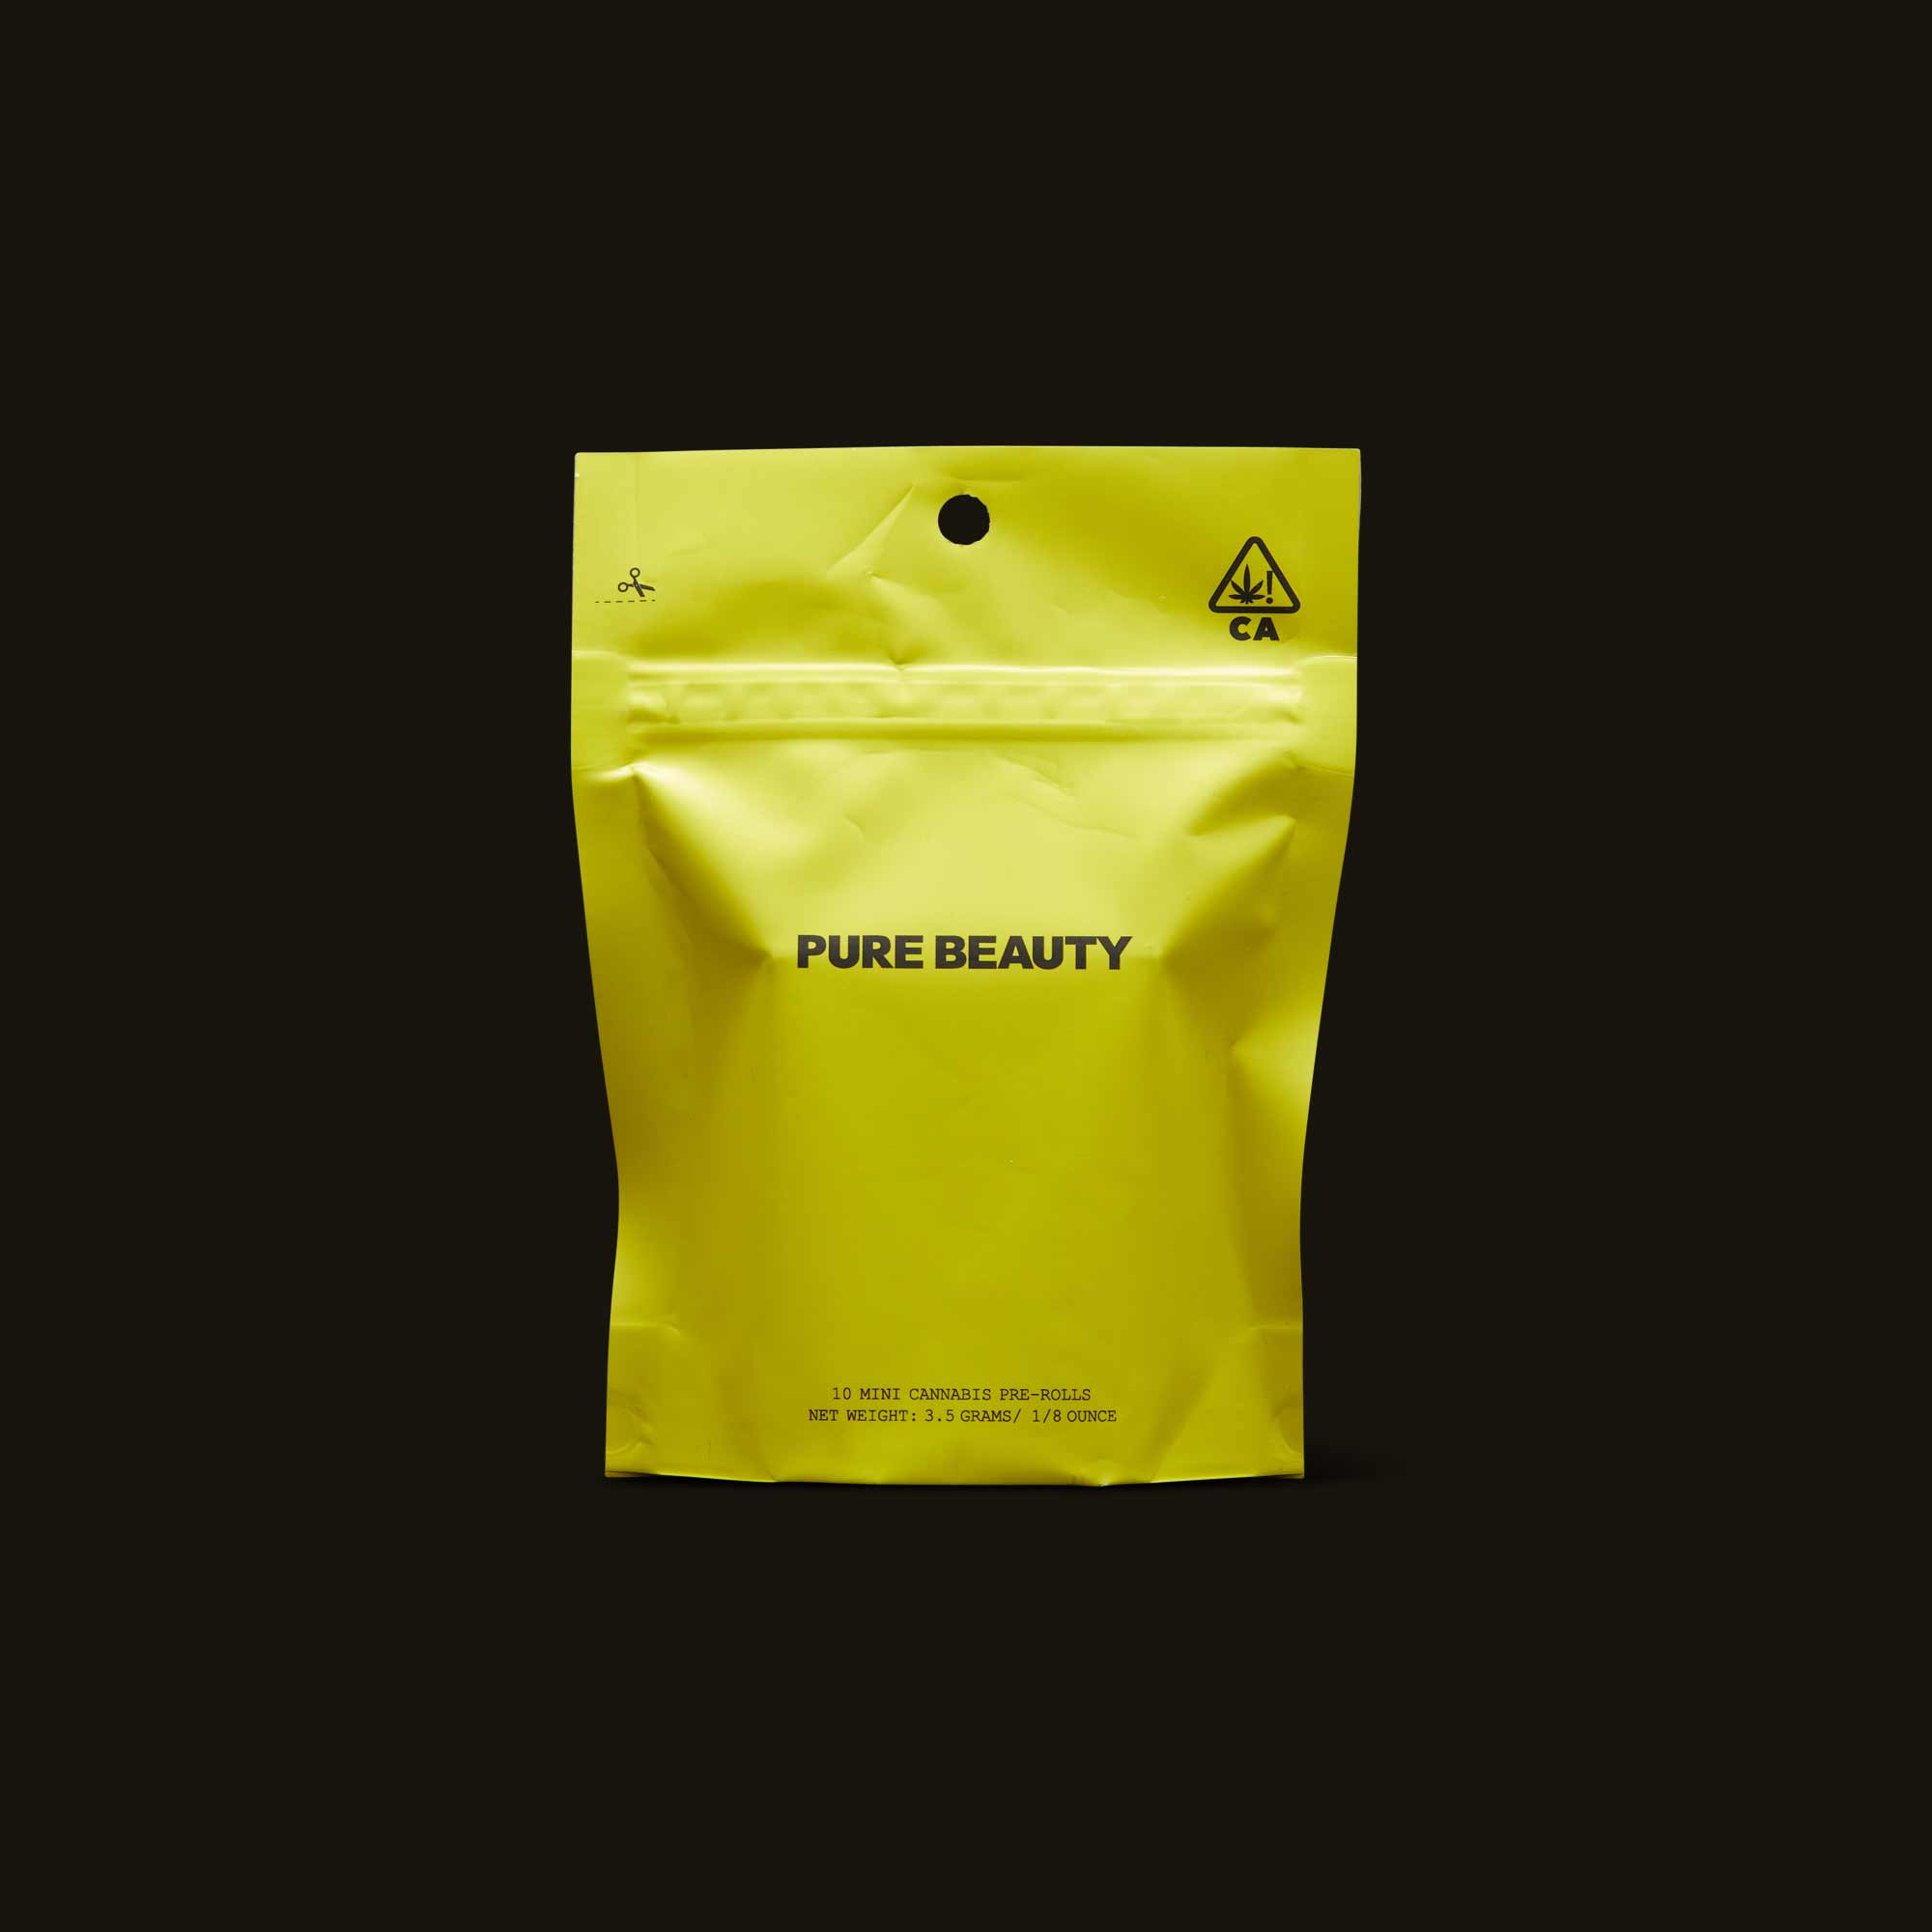 Pure Beauty yellow pre-roll sealed envelope packaging